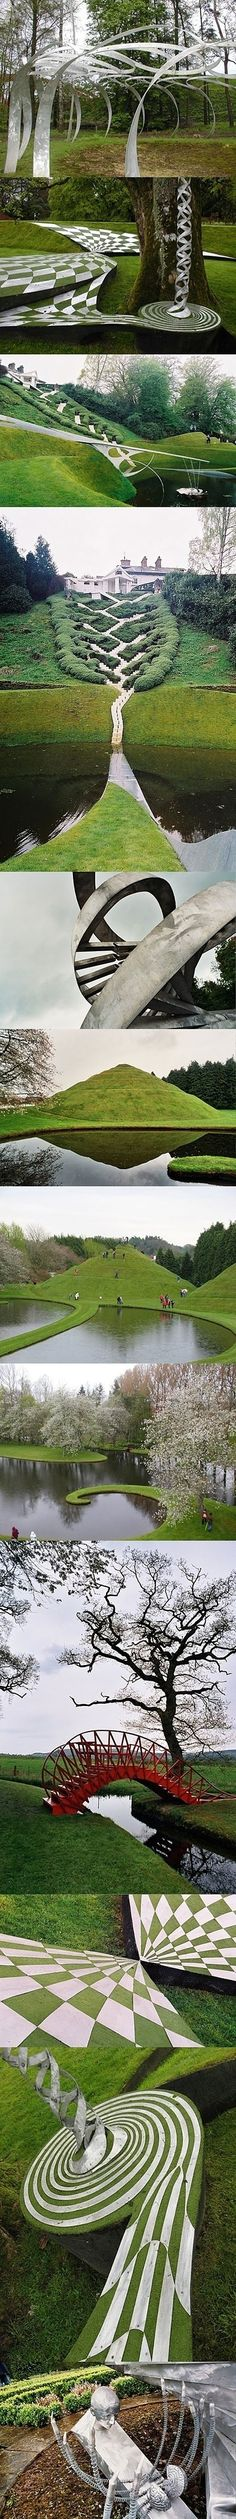 Scotland's Incredible Garden of Cosmic Speculation www.environmentalgraffiti.com/news-garden-cosmic-speculation